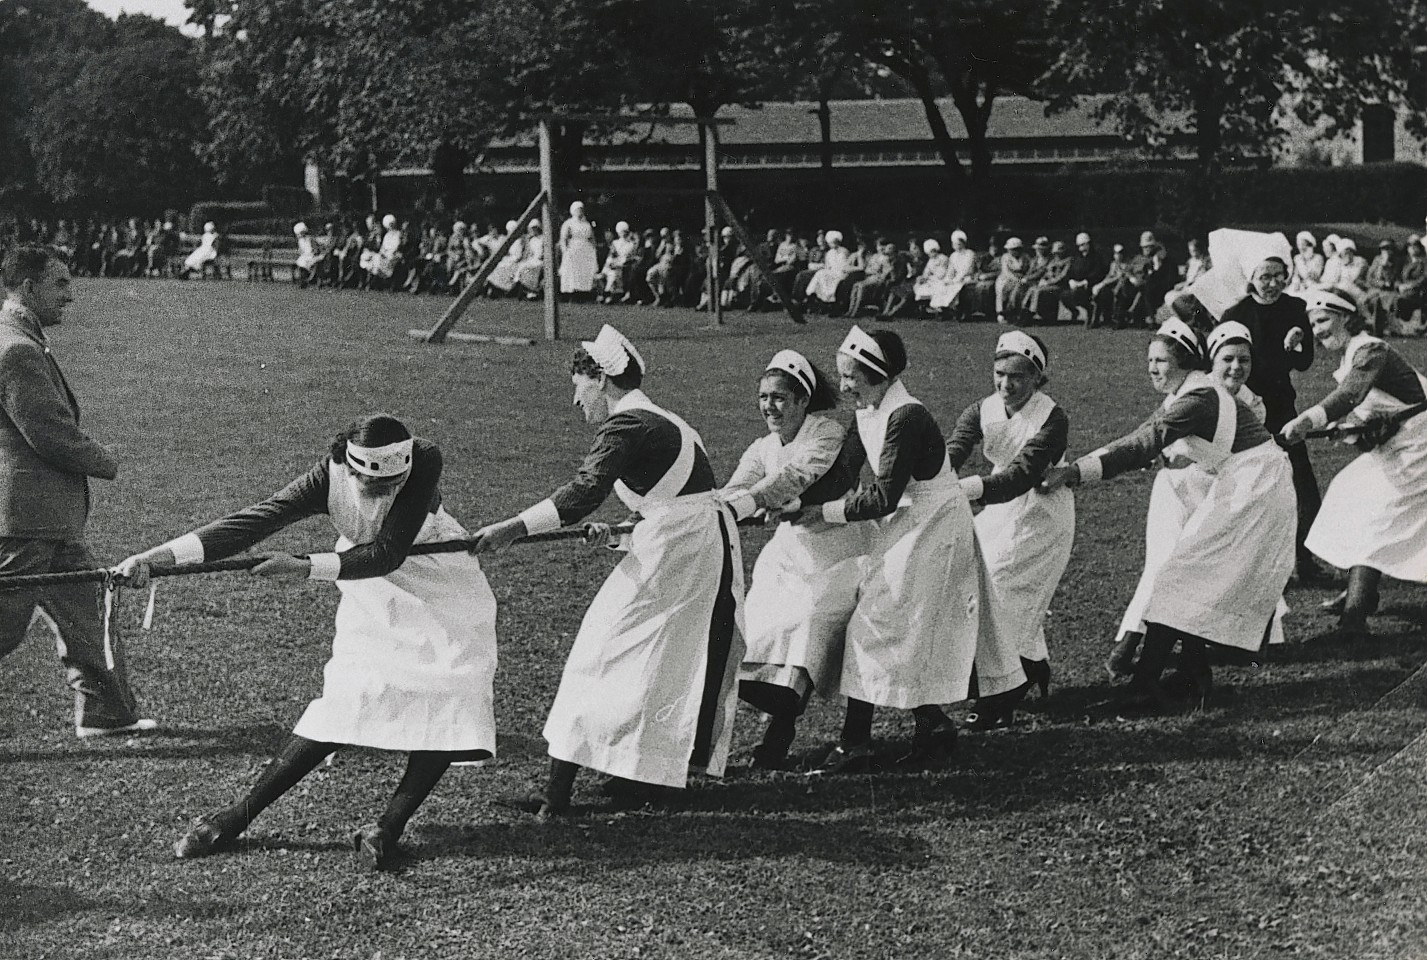 Nurses taking part in a sports day at Cornhill in the 1930s